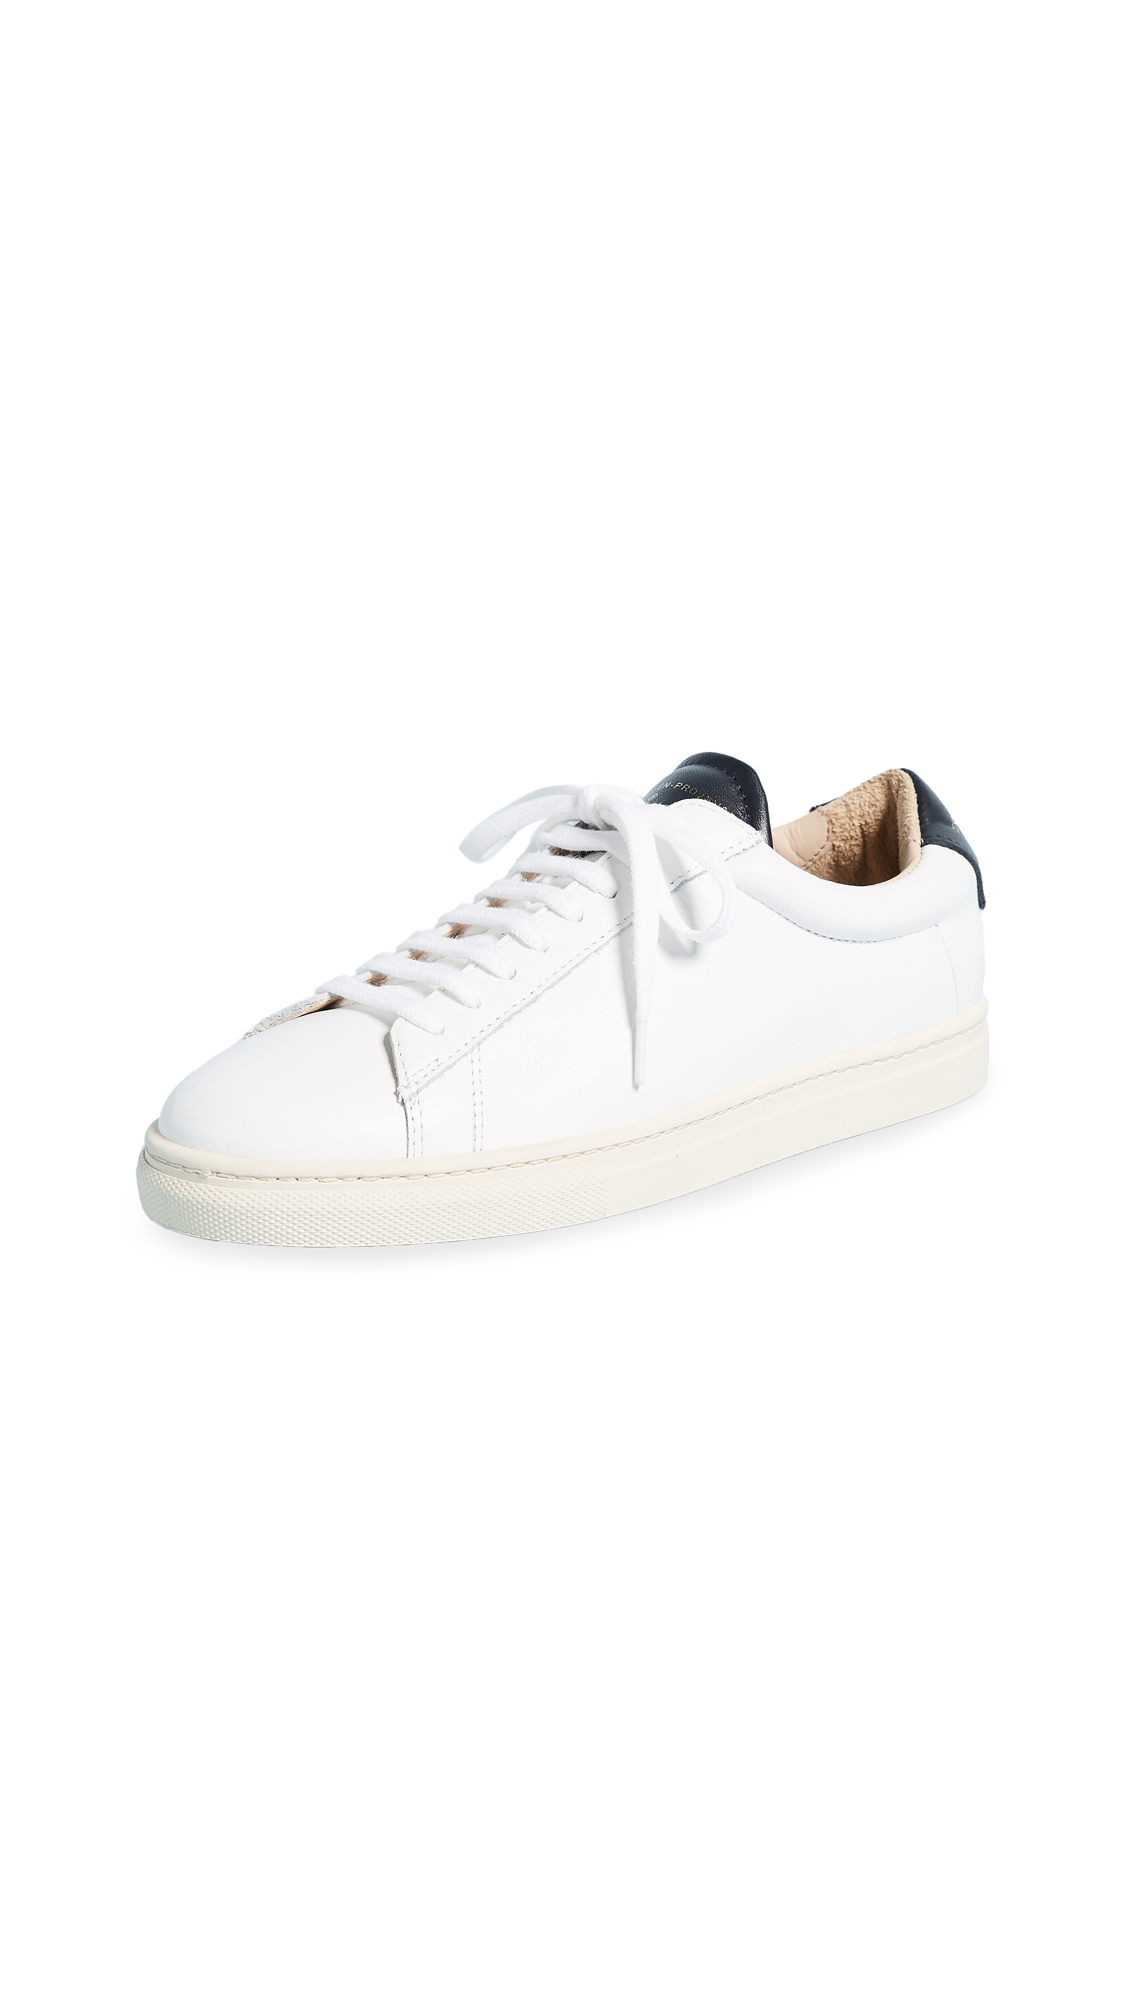 Zespa Lace Up Sneakers - White/Navy